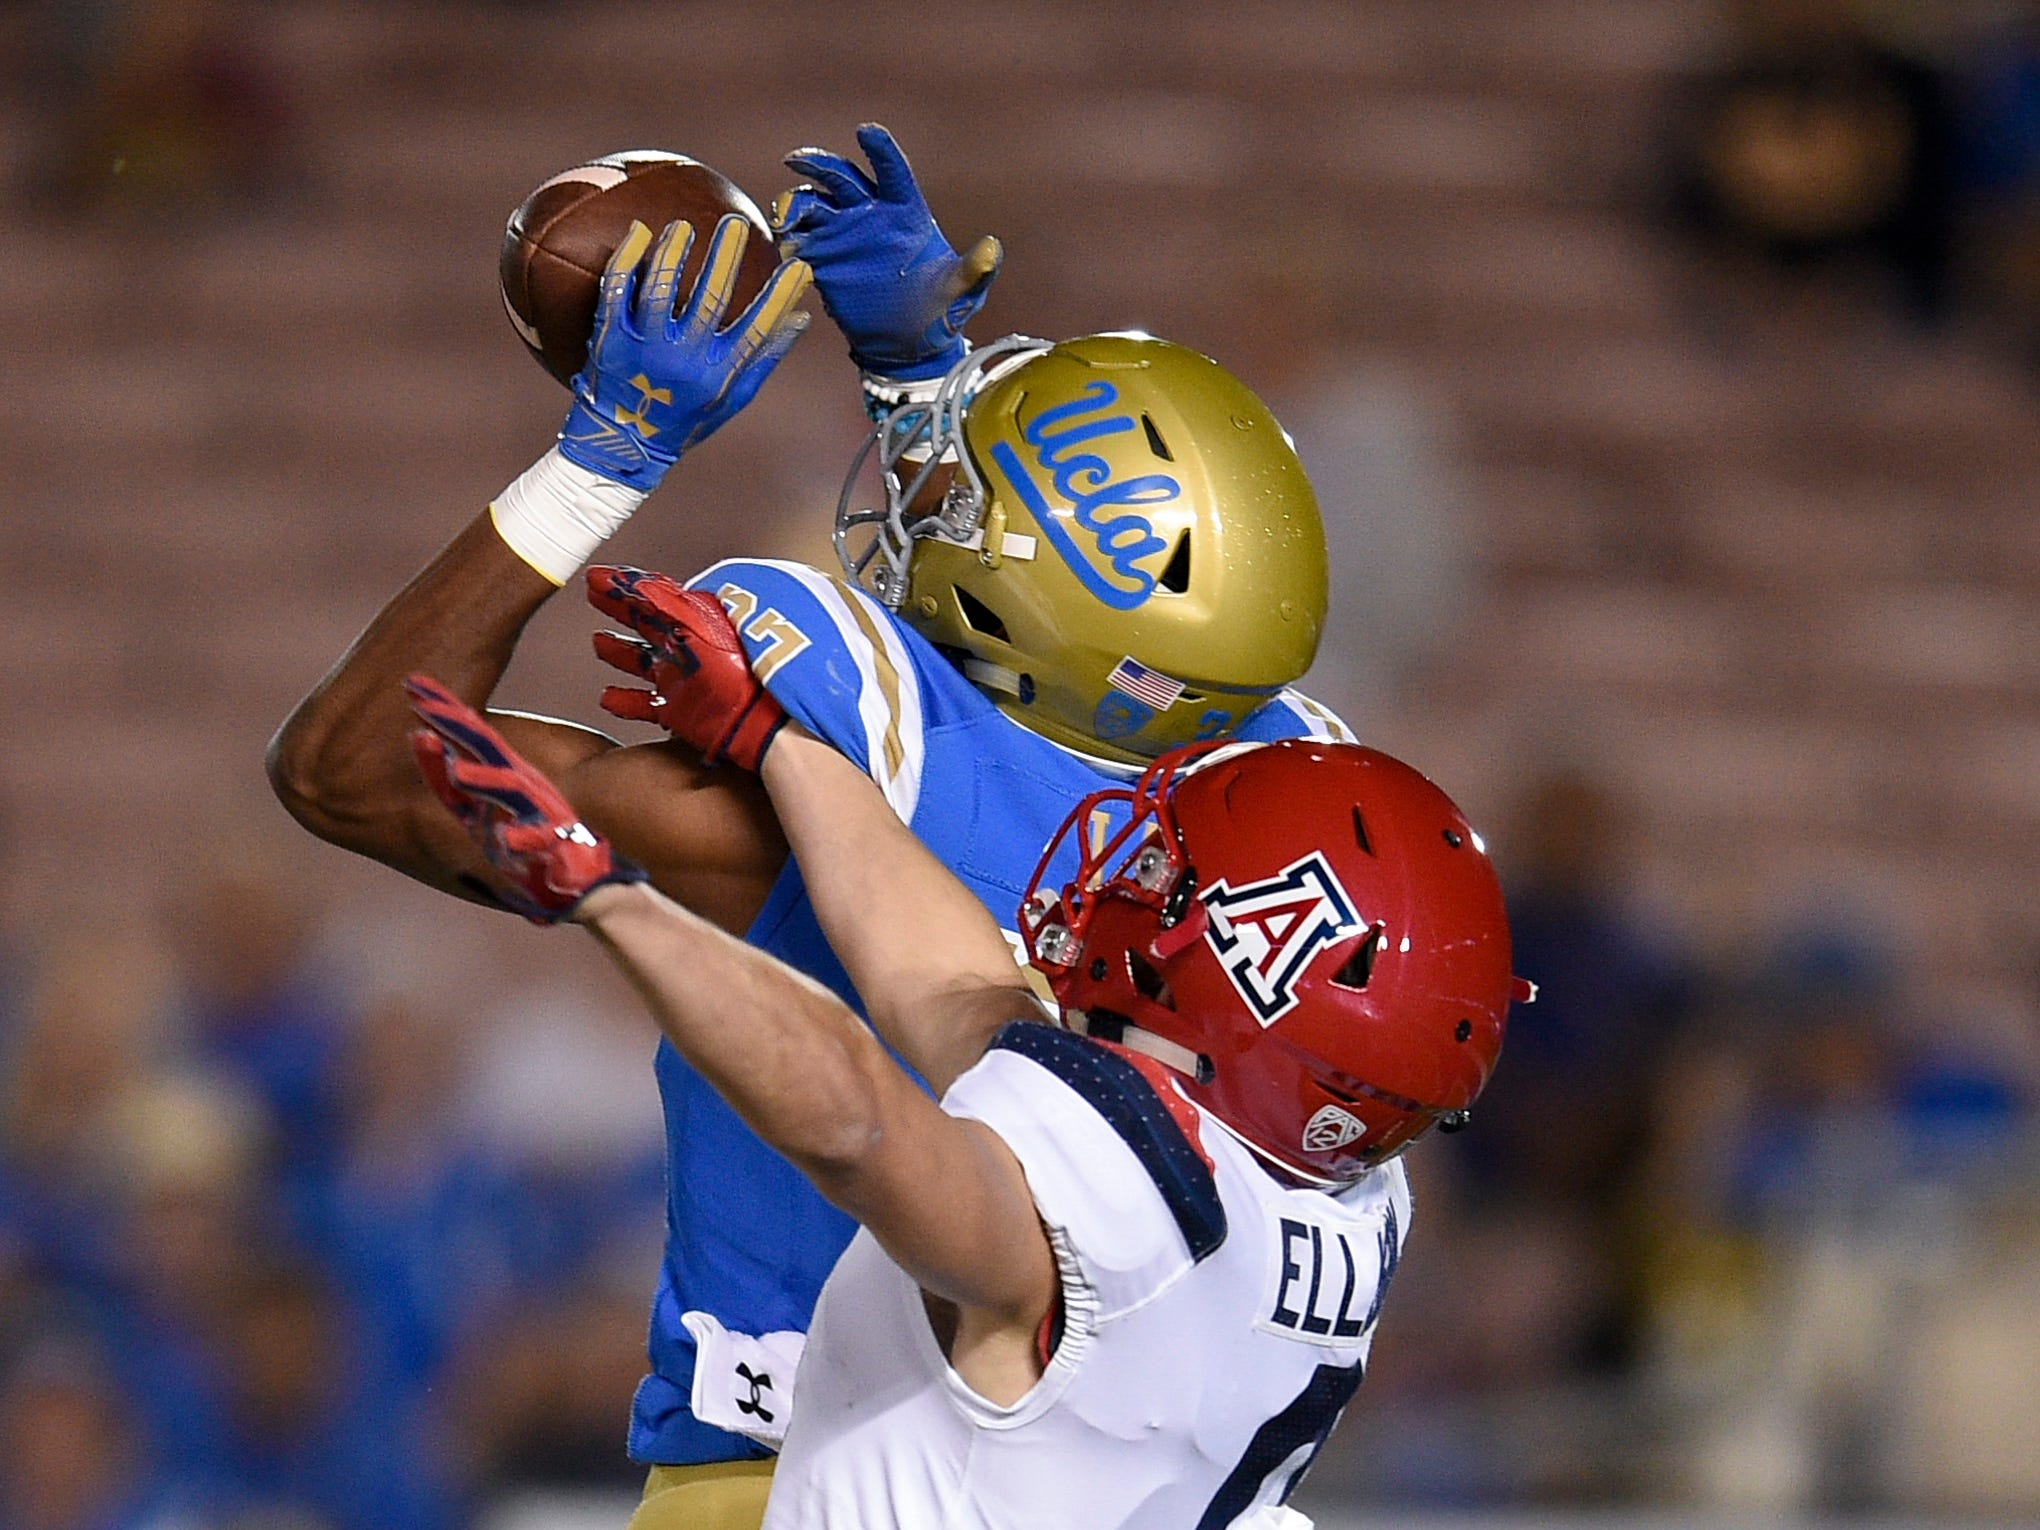 Oct 20, 2018; Pasadena, CA, USA; UCLA Bruins defensive back Quentin Lake (37) intercepts a ball intended for Arizona Wildcats wide receiver Tony Ellison (9) during the first half at Rose Bowl. Mandatory Credit: Kelvin Kuo-USA TODAY Sports